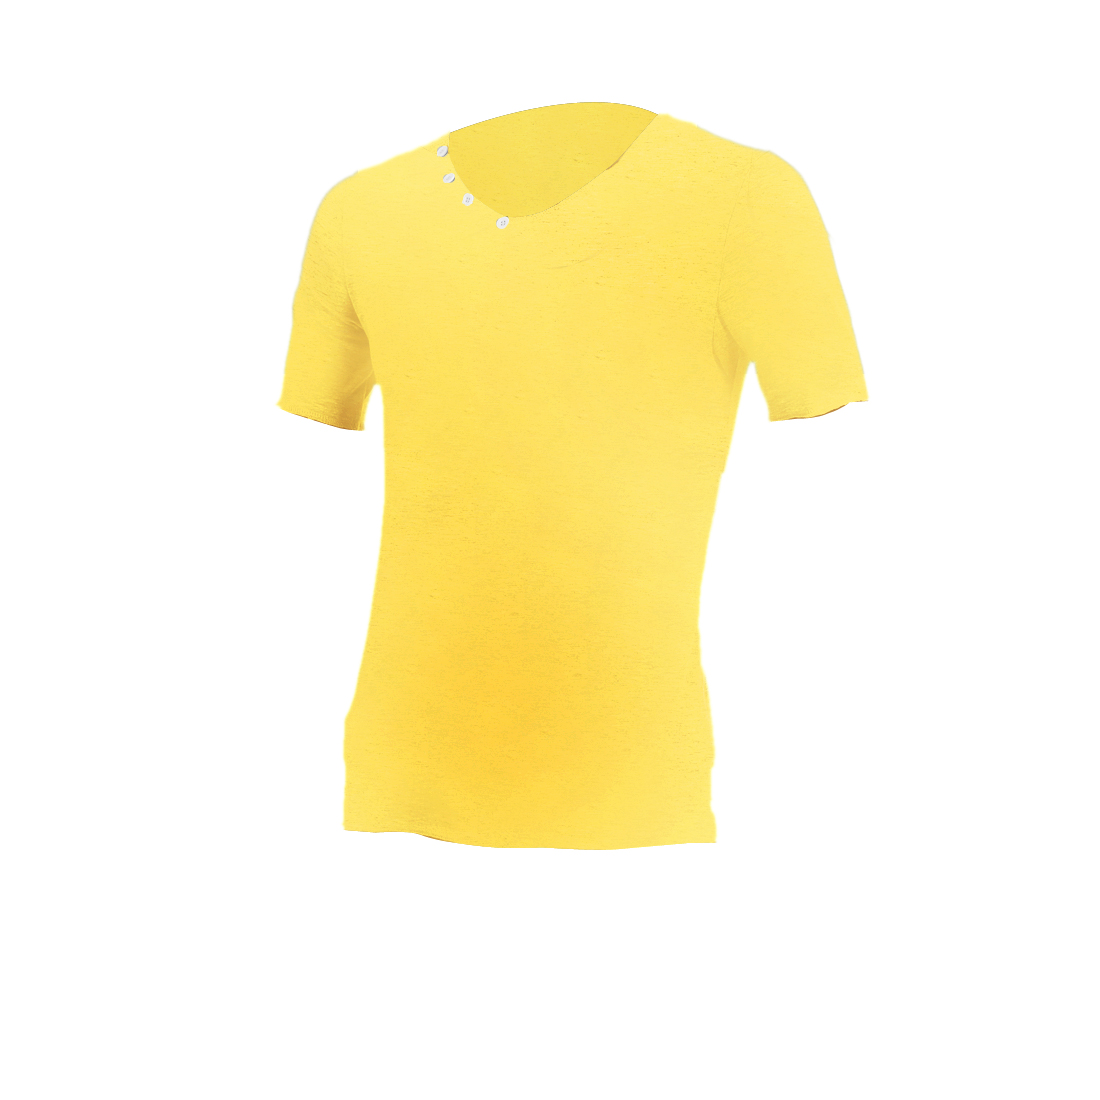 Men V Neck Style Short Sleeve Stretchy Summer Casual T-Shirt Yellow M